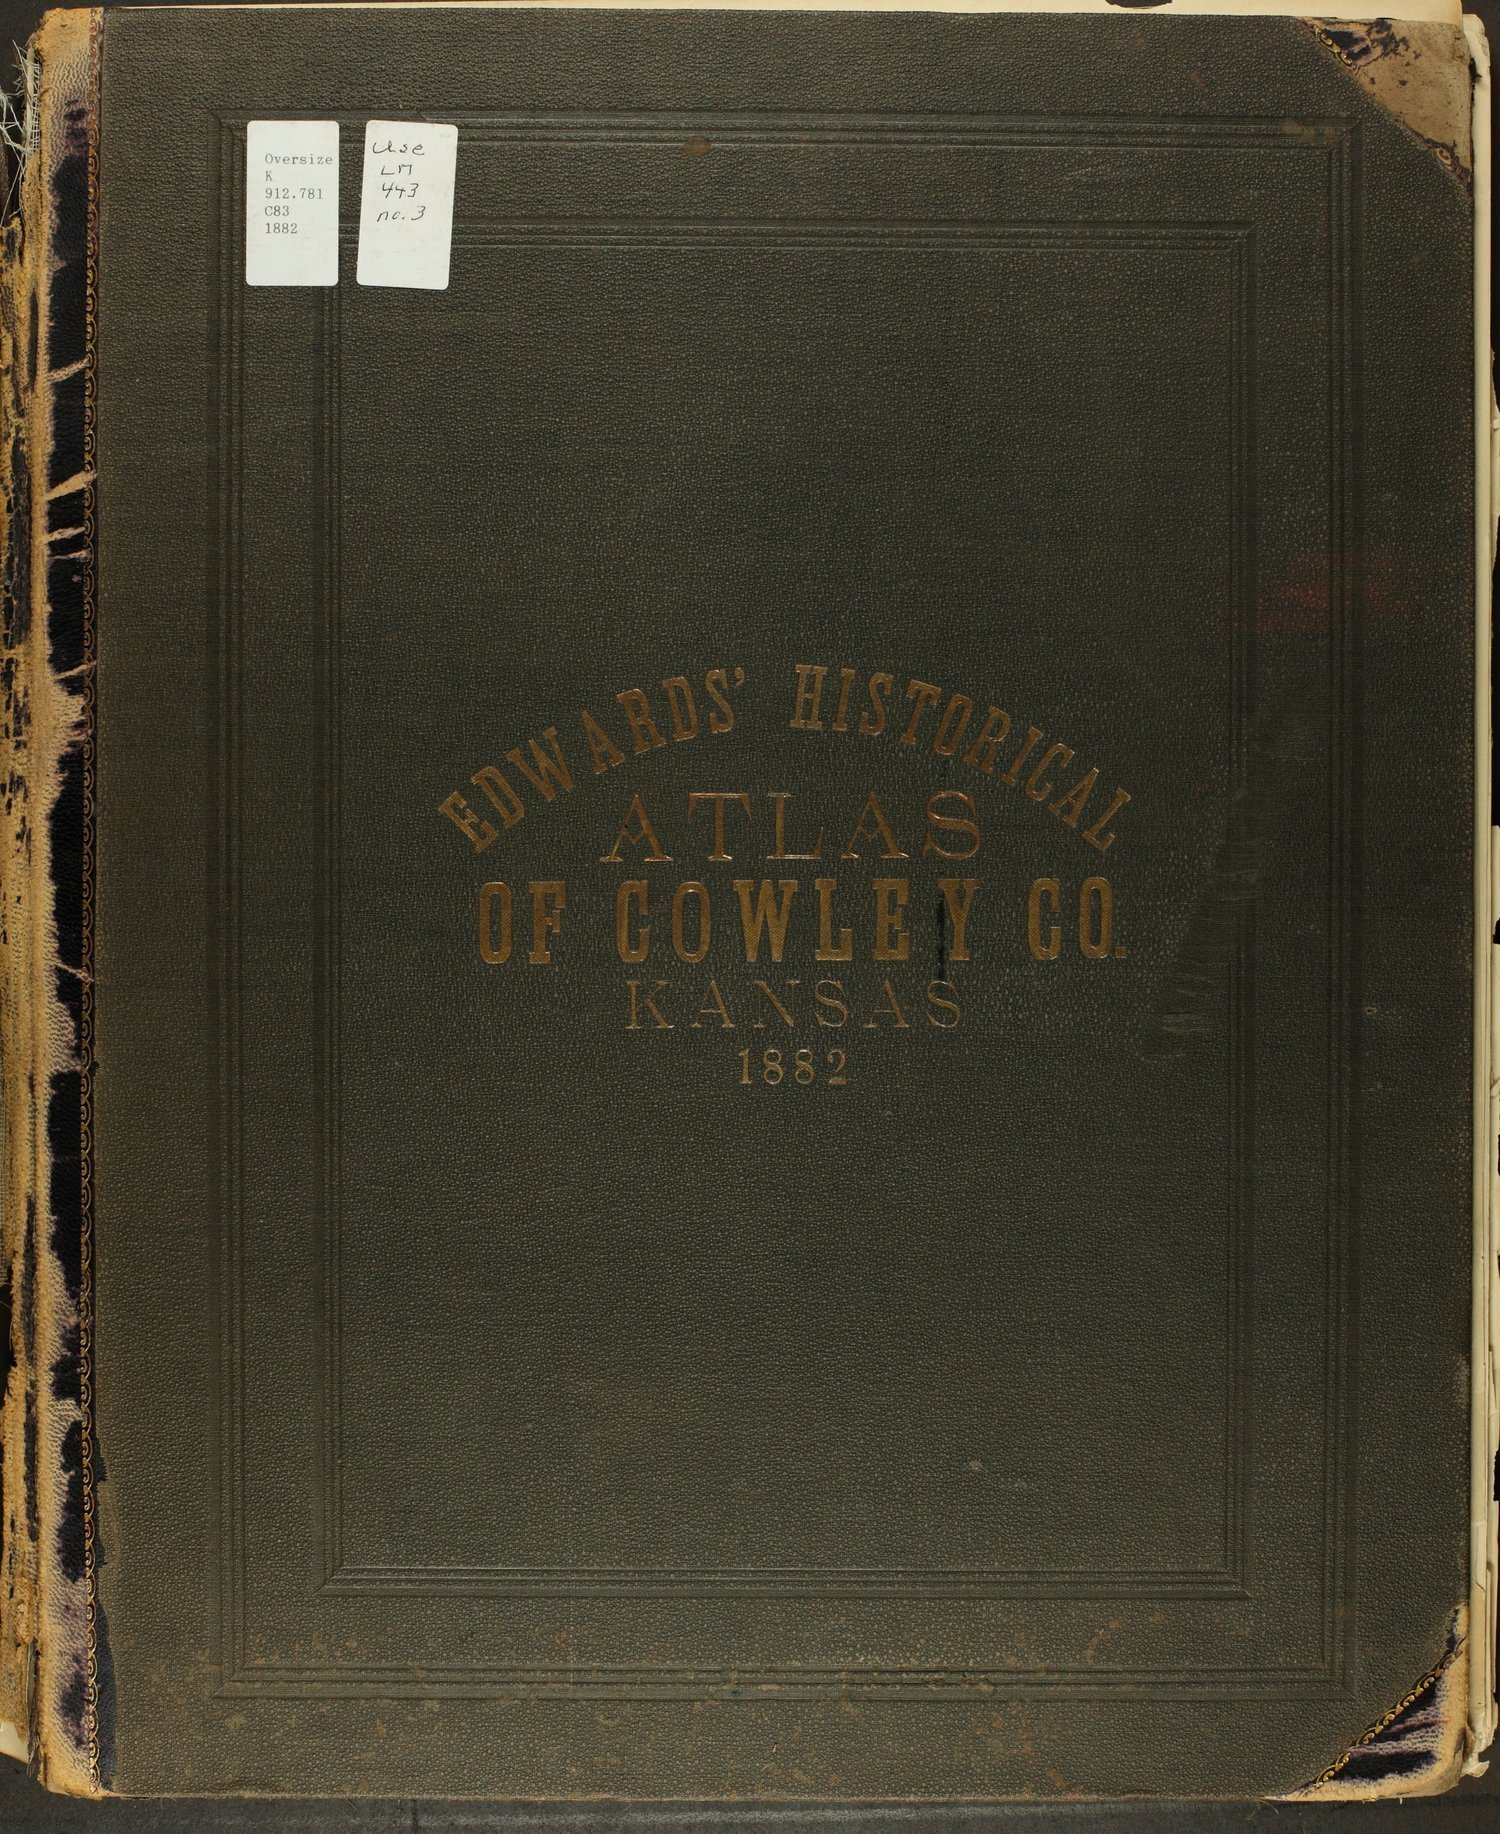 Historical atlas of Cowley County, Kansas - Front Cover